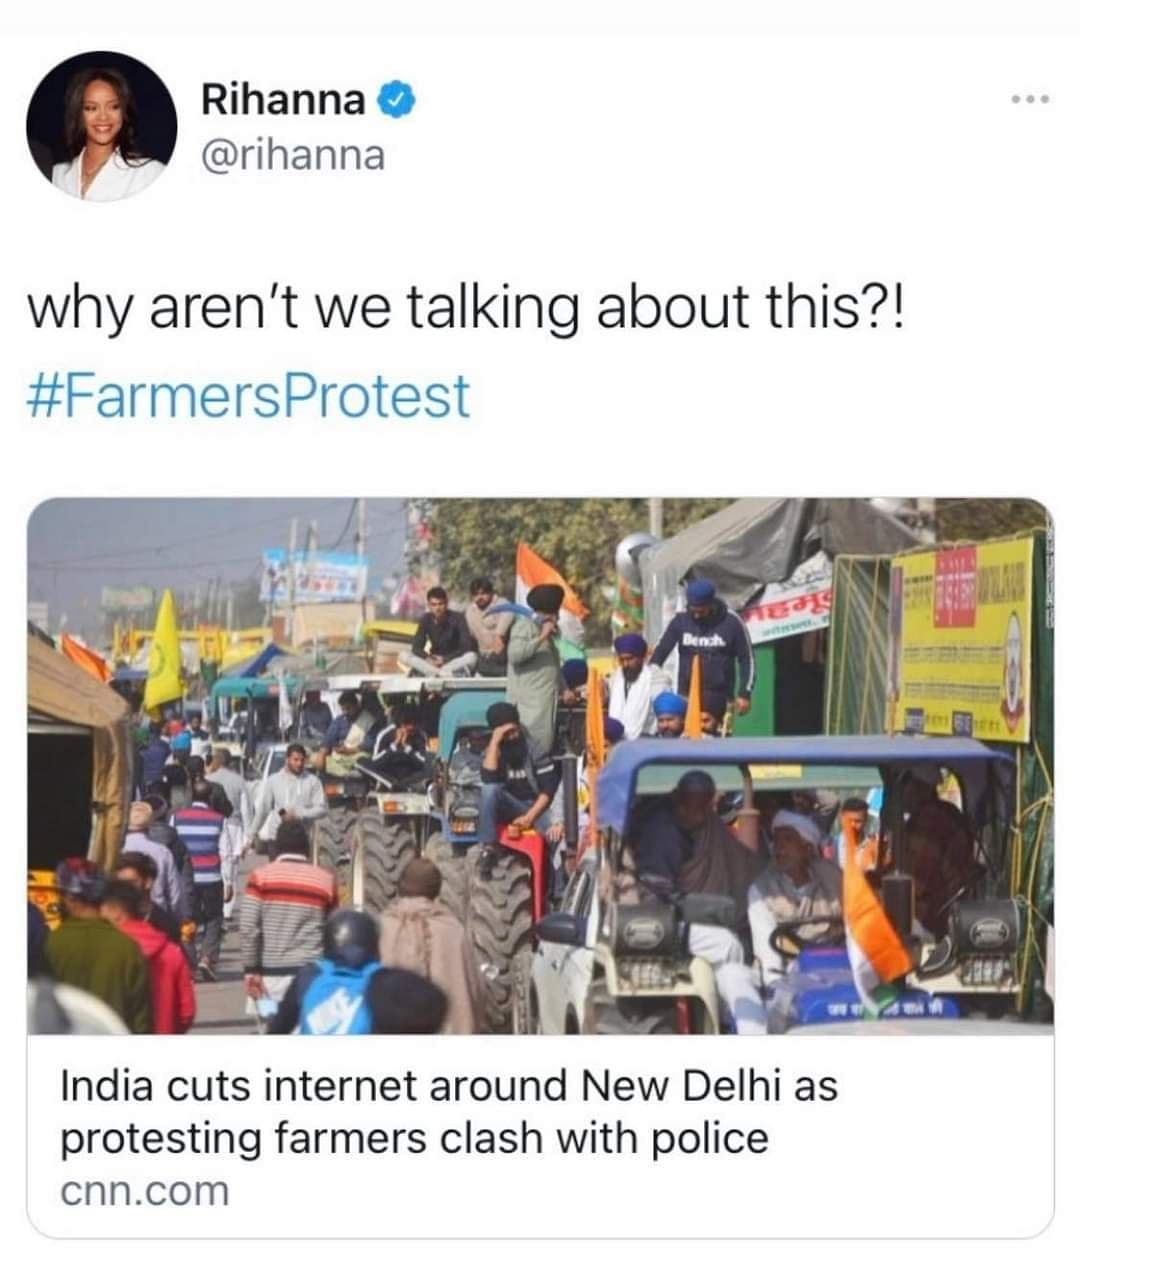 By countering the celeb tweets, the govt drew more attention to them than these would've got, says Harini Calamur